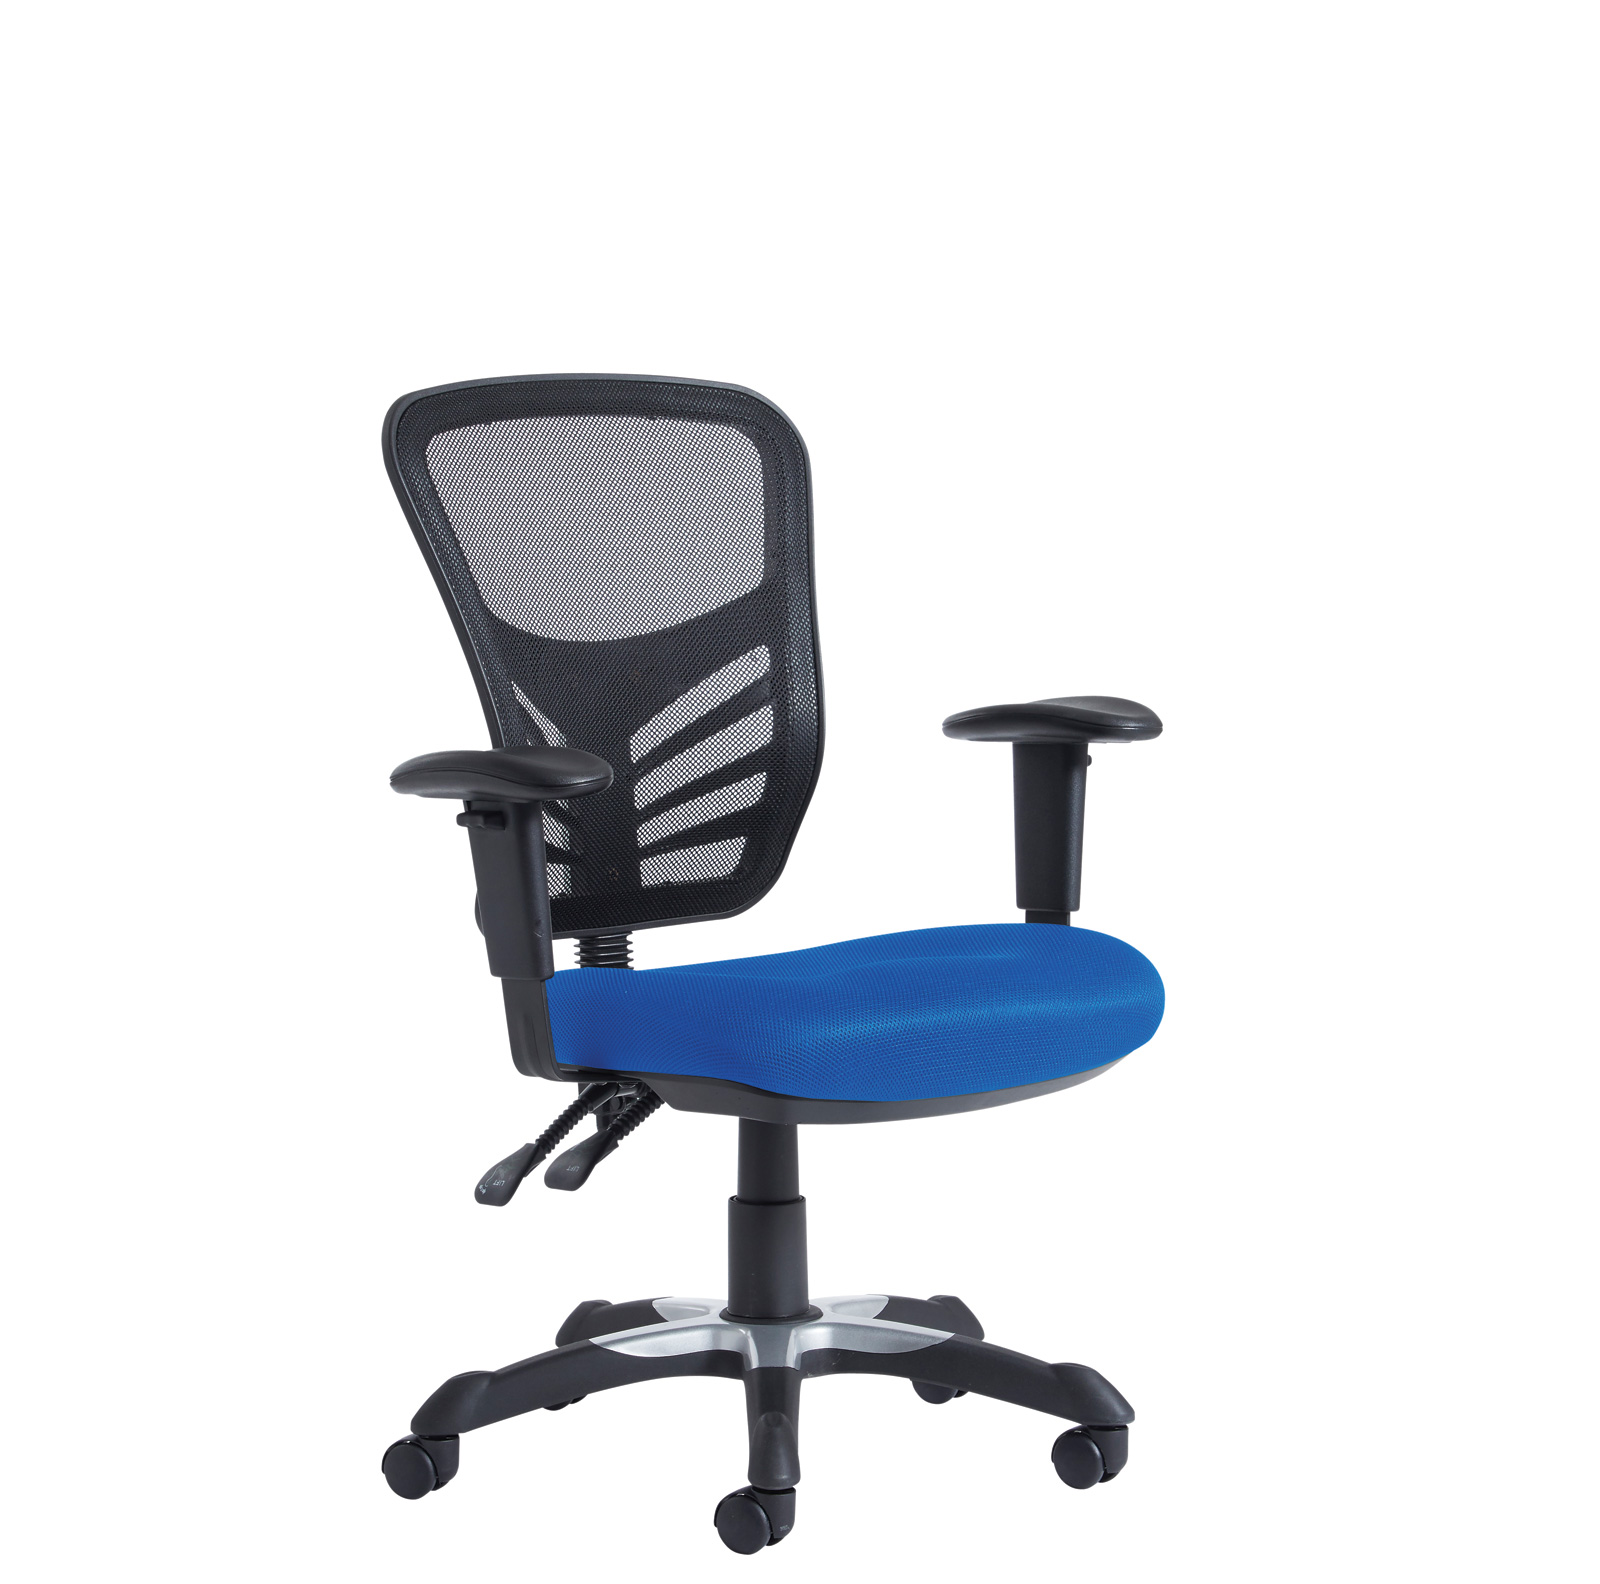 ergonomic chair levers woven lounge outdoor vantage mesh office 2 lever